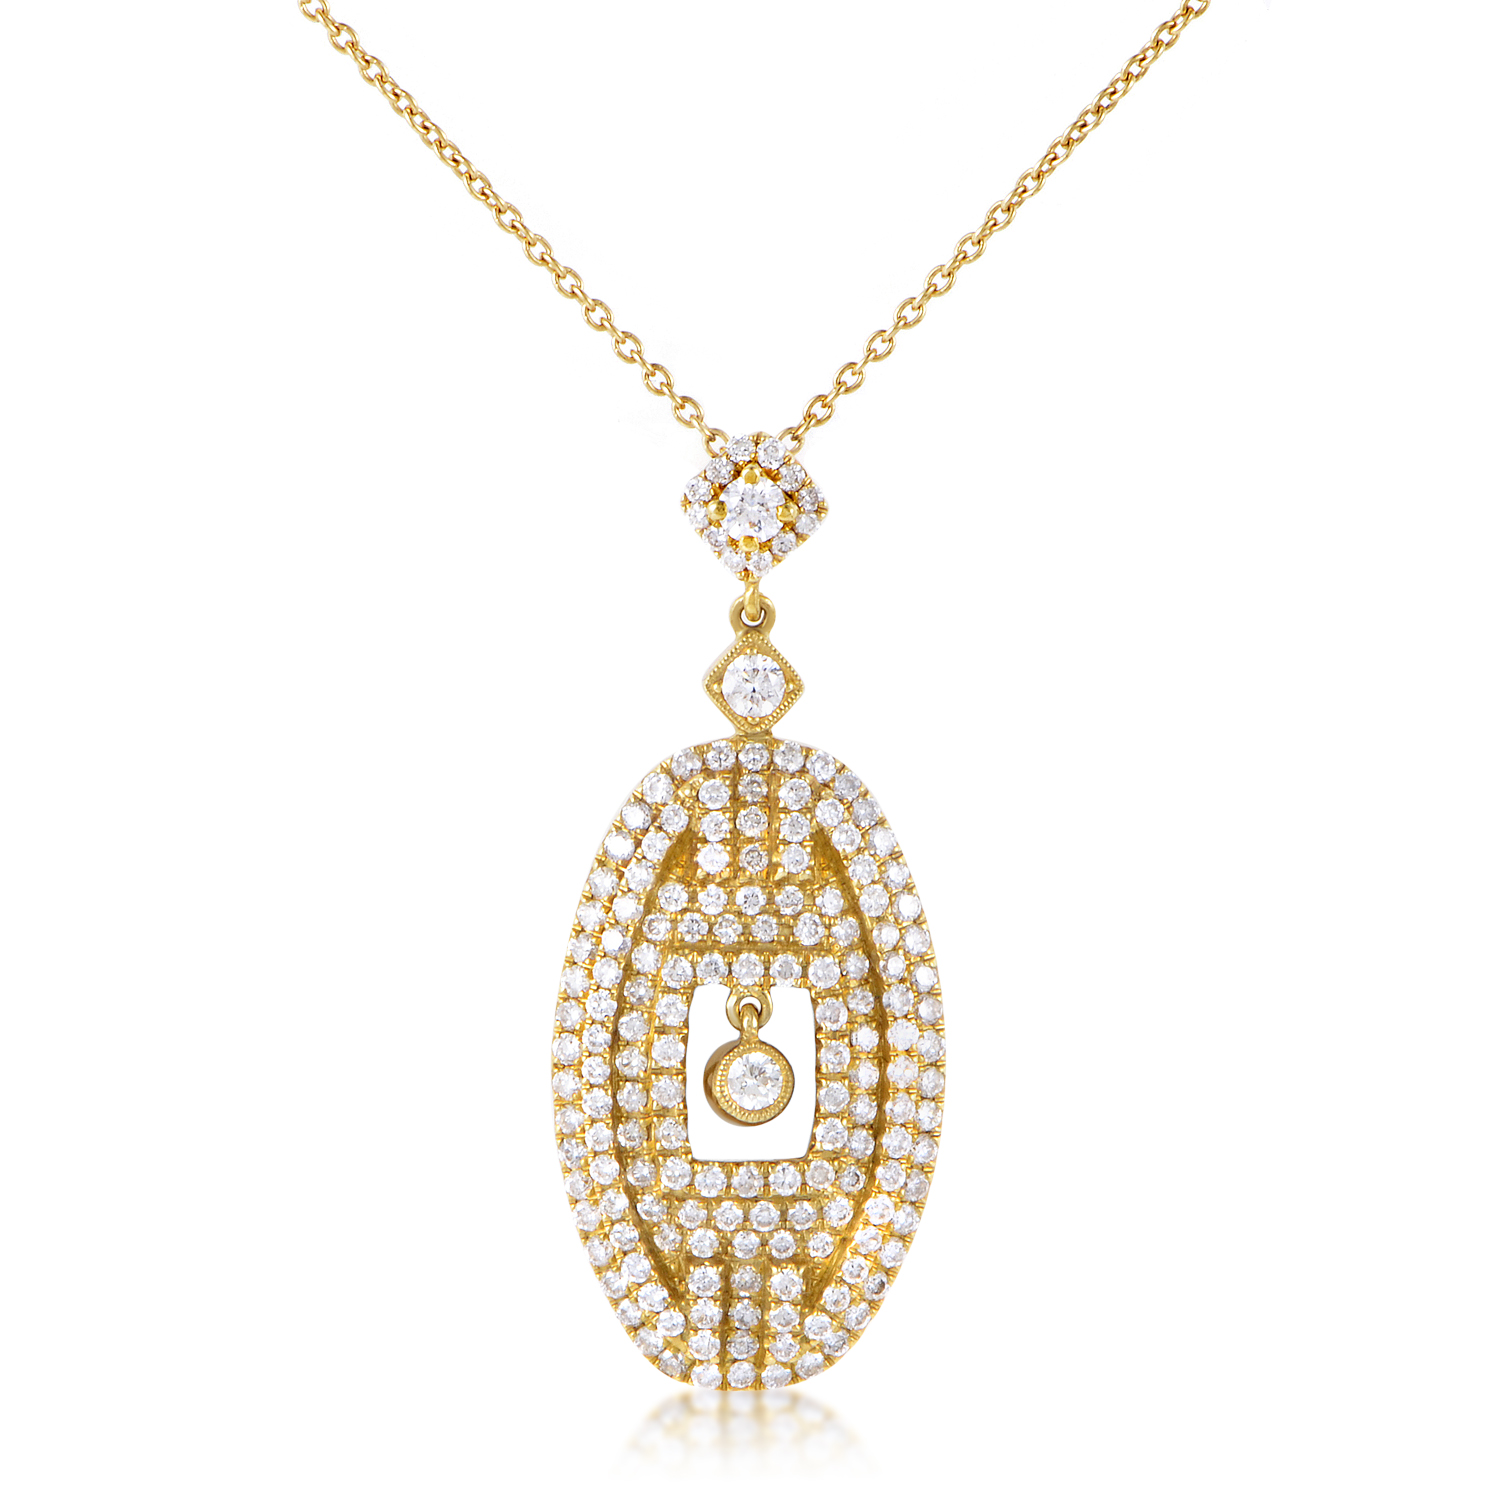 Women's 18K Yellow Gold Diamond Pave Pendant Necklace KEDPMSZZ